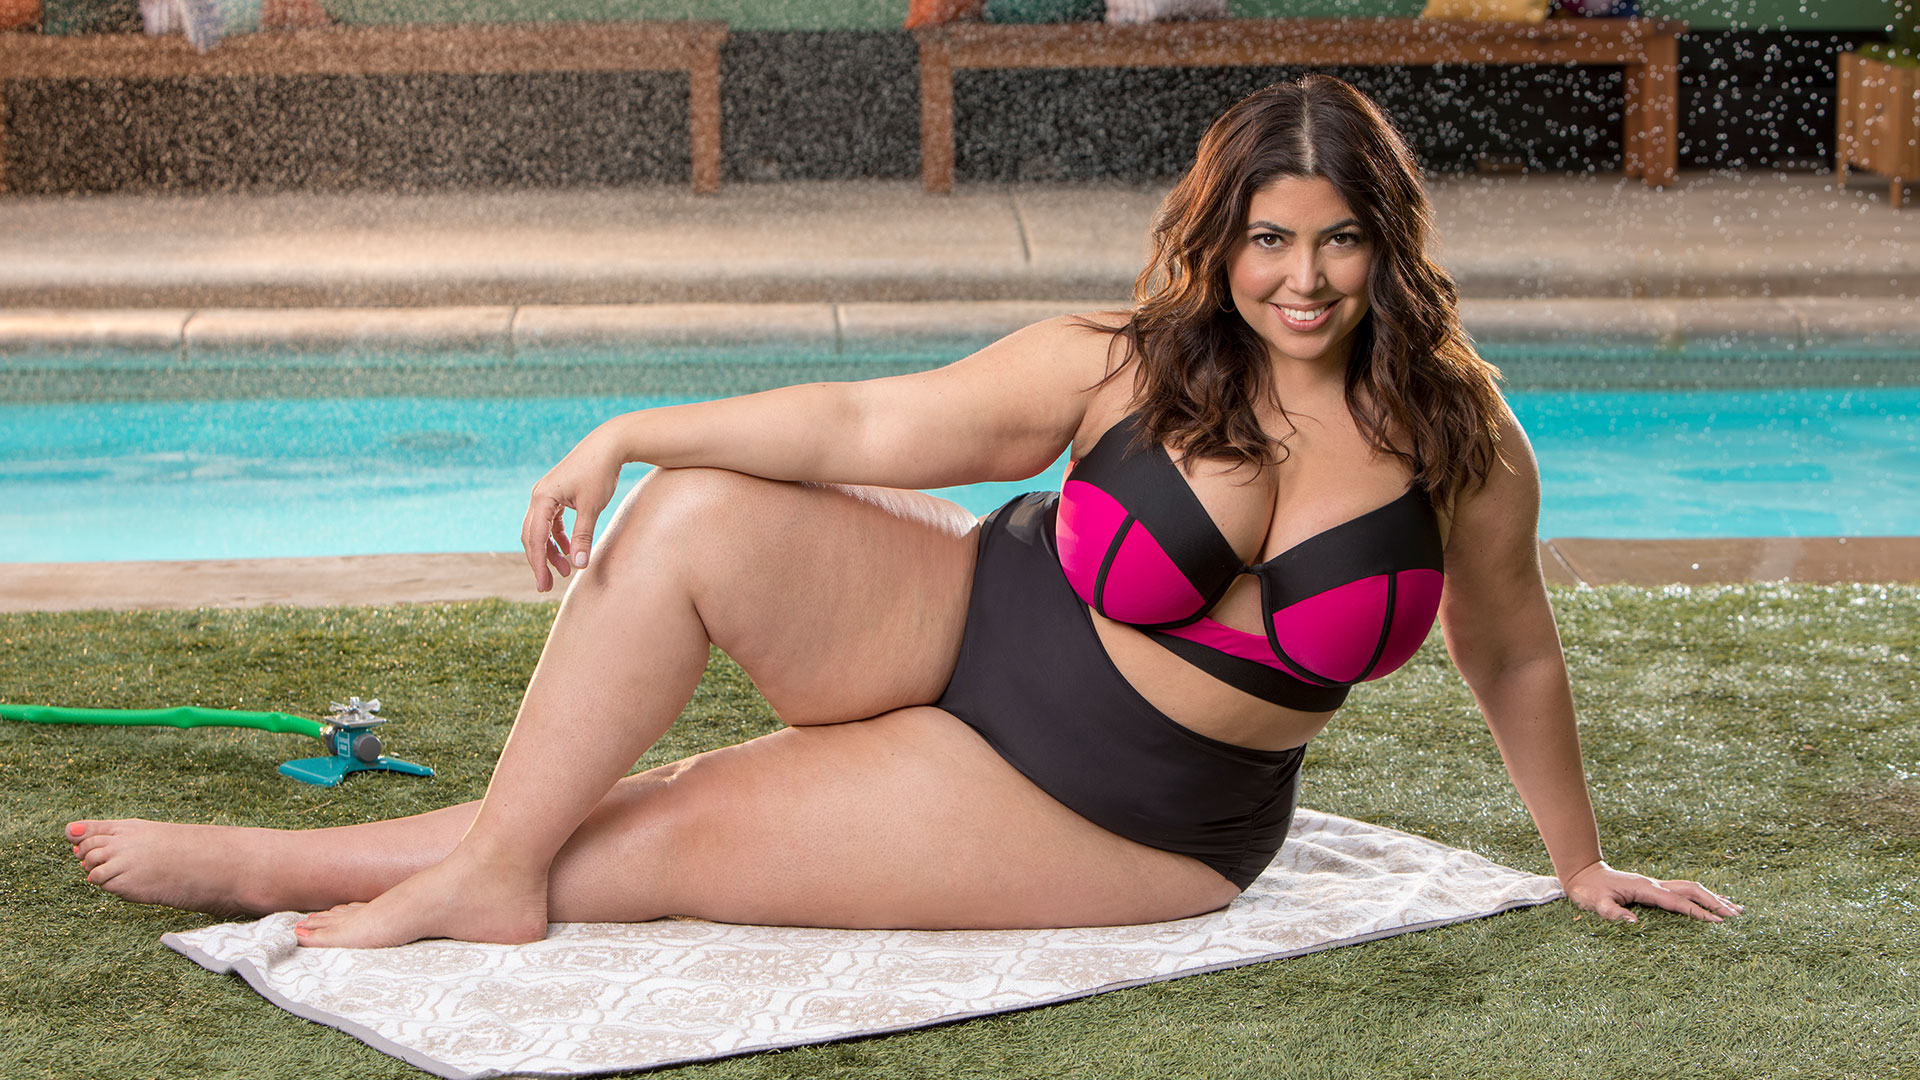 Jessica Milagros puts her modeling experience to good use showing off modern swimwear.